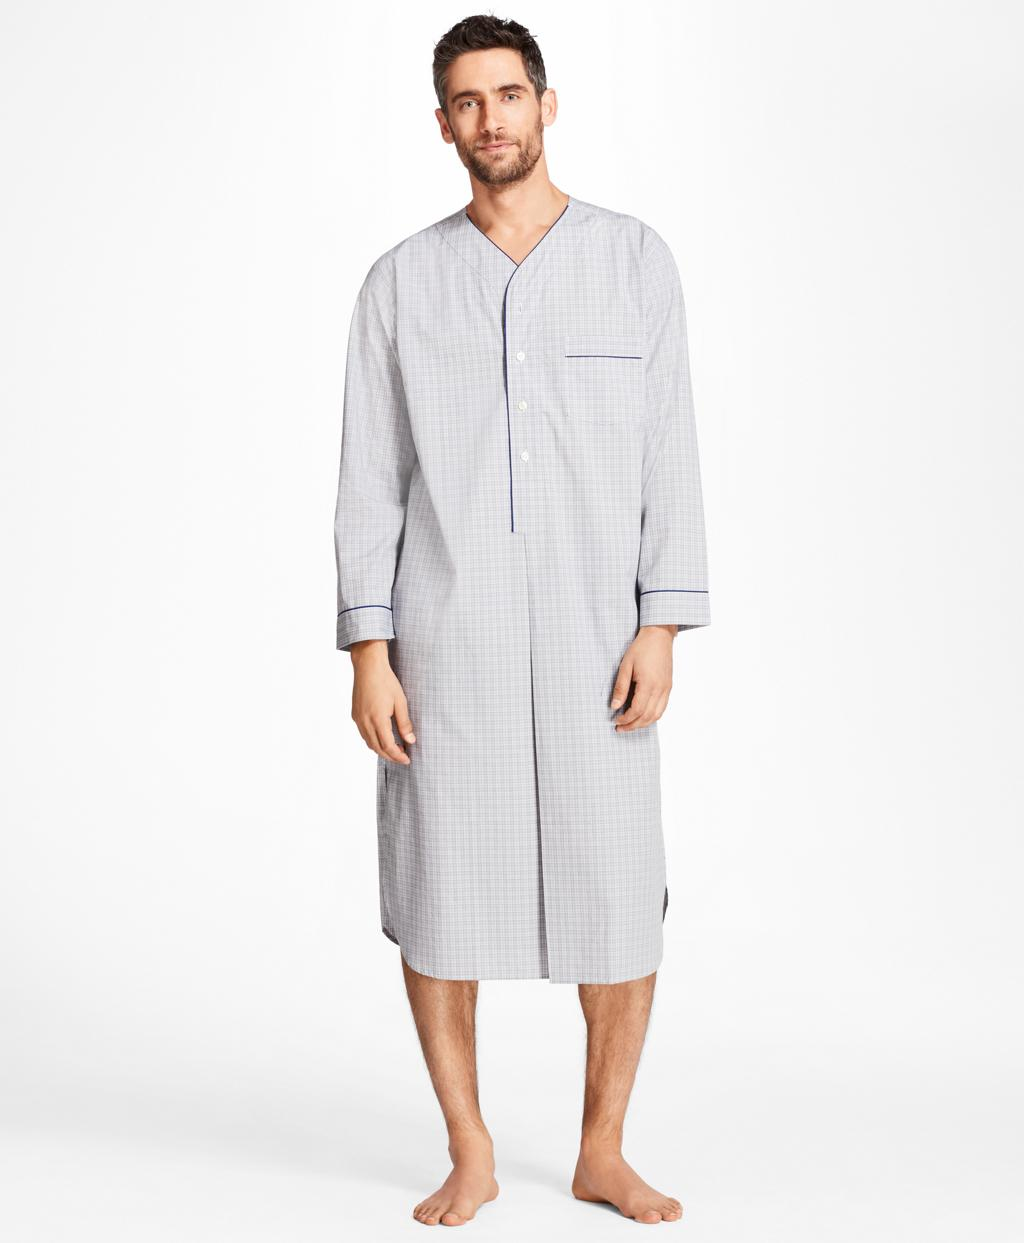 Lyst - Brooks Brothers Plaid Nightshirt in Gray for Men 61898d664